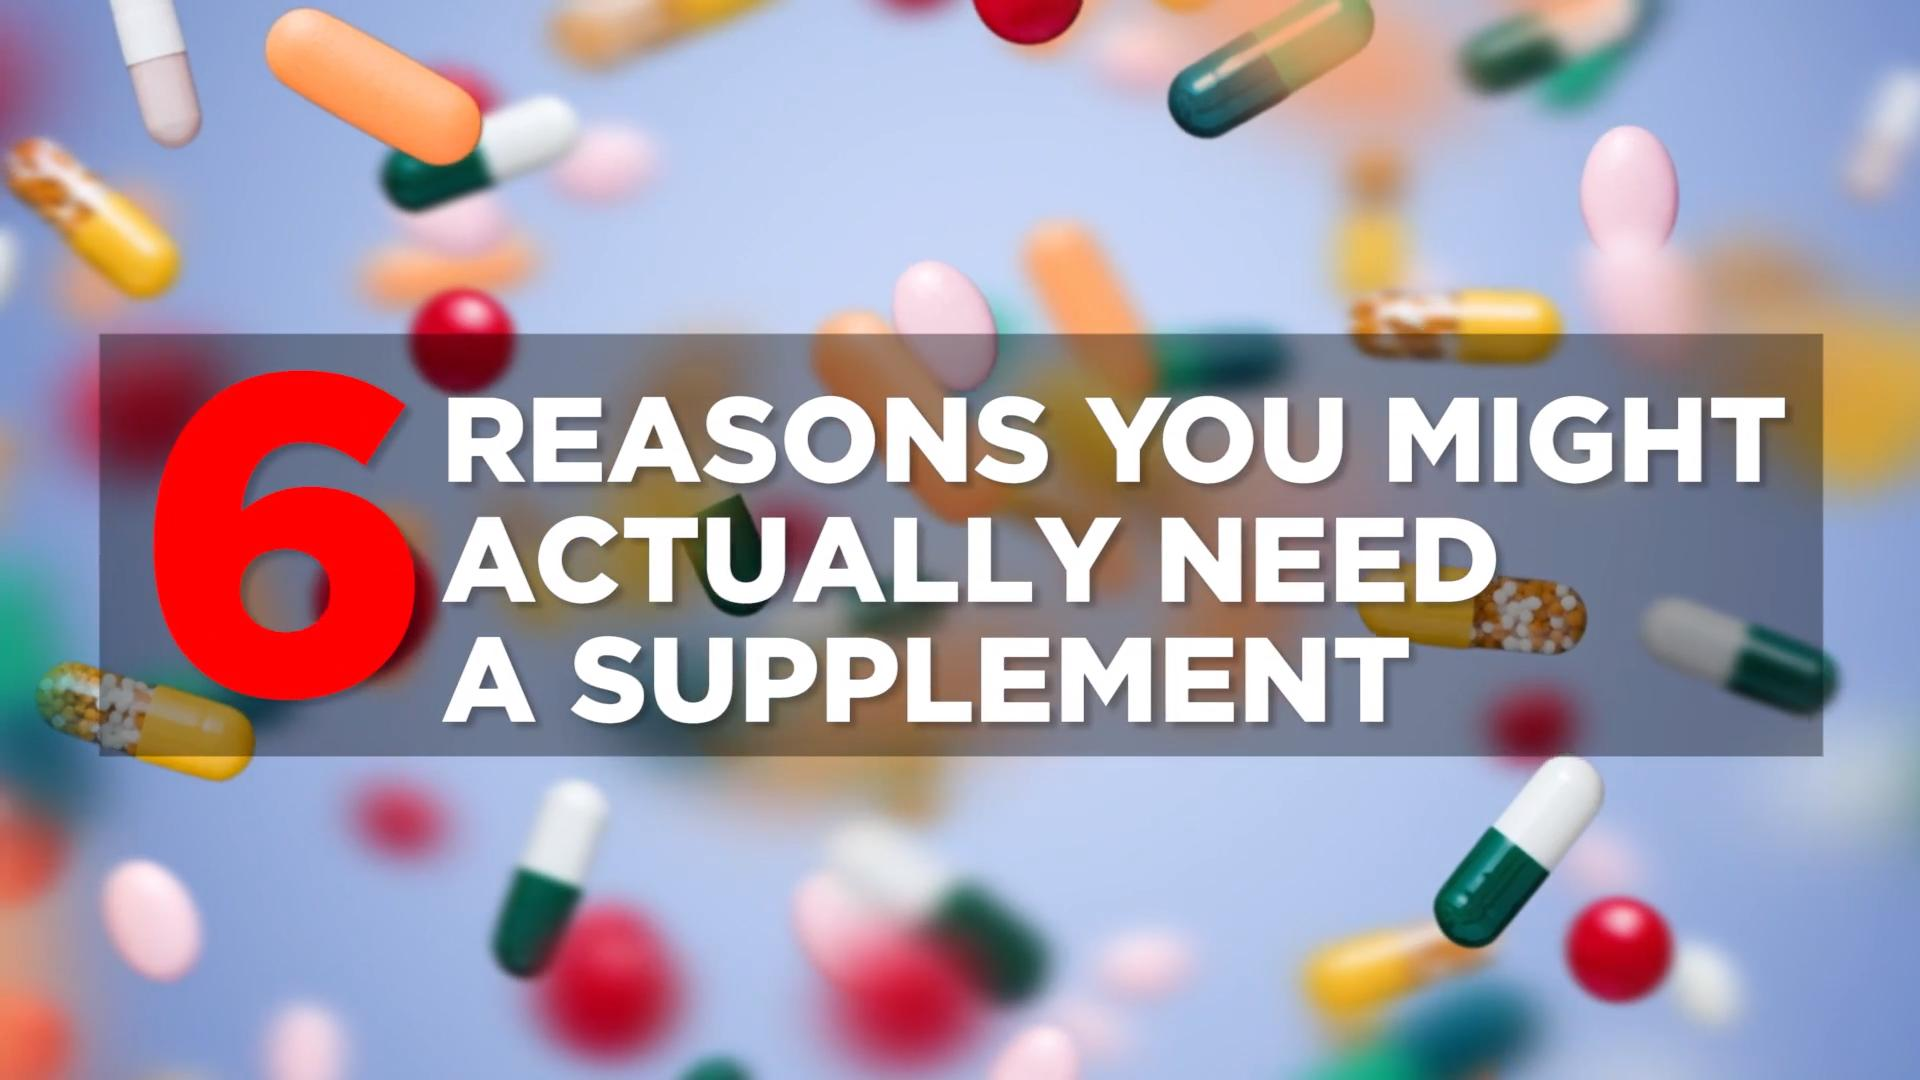 Should you take a supplement?